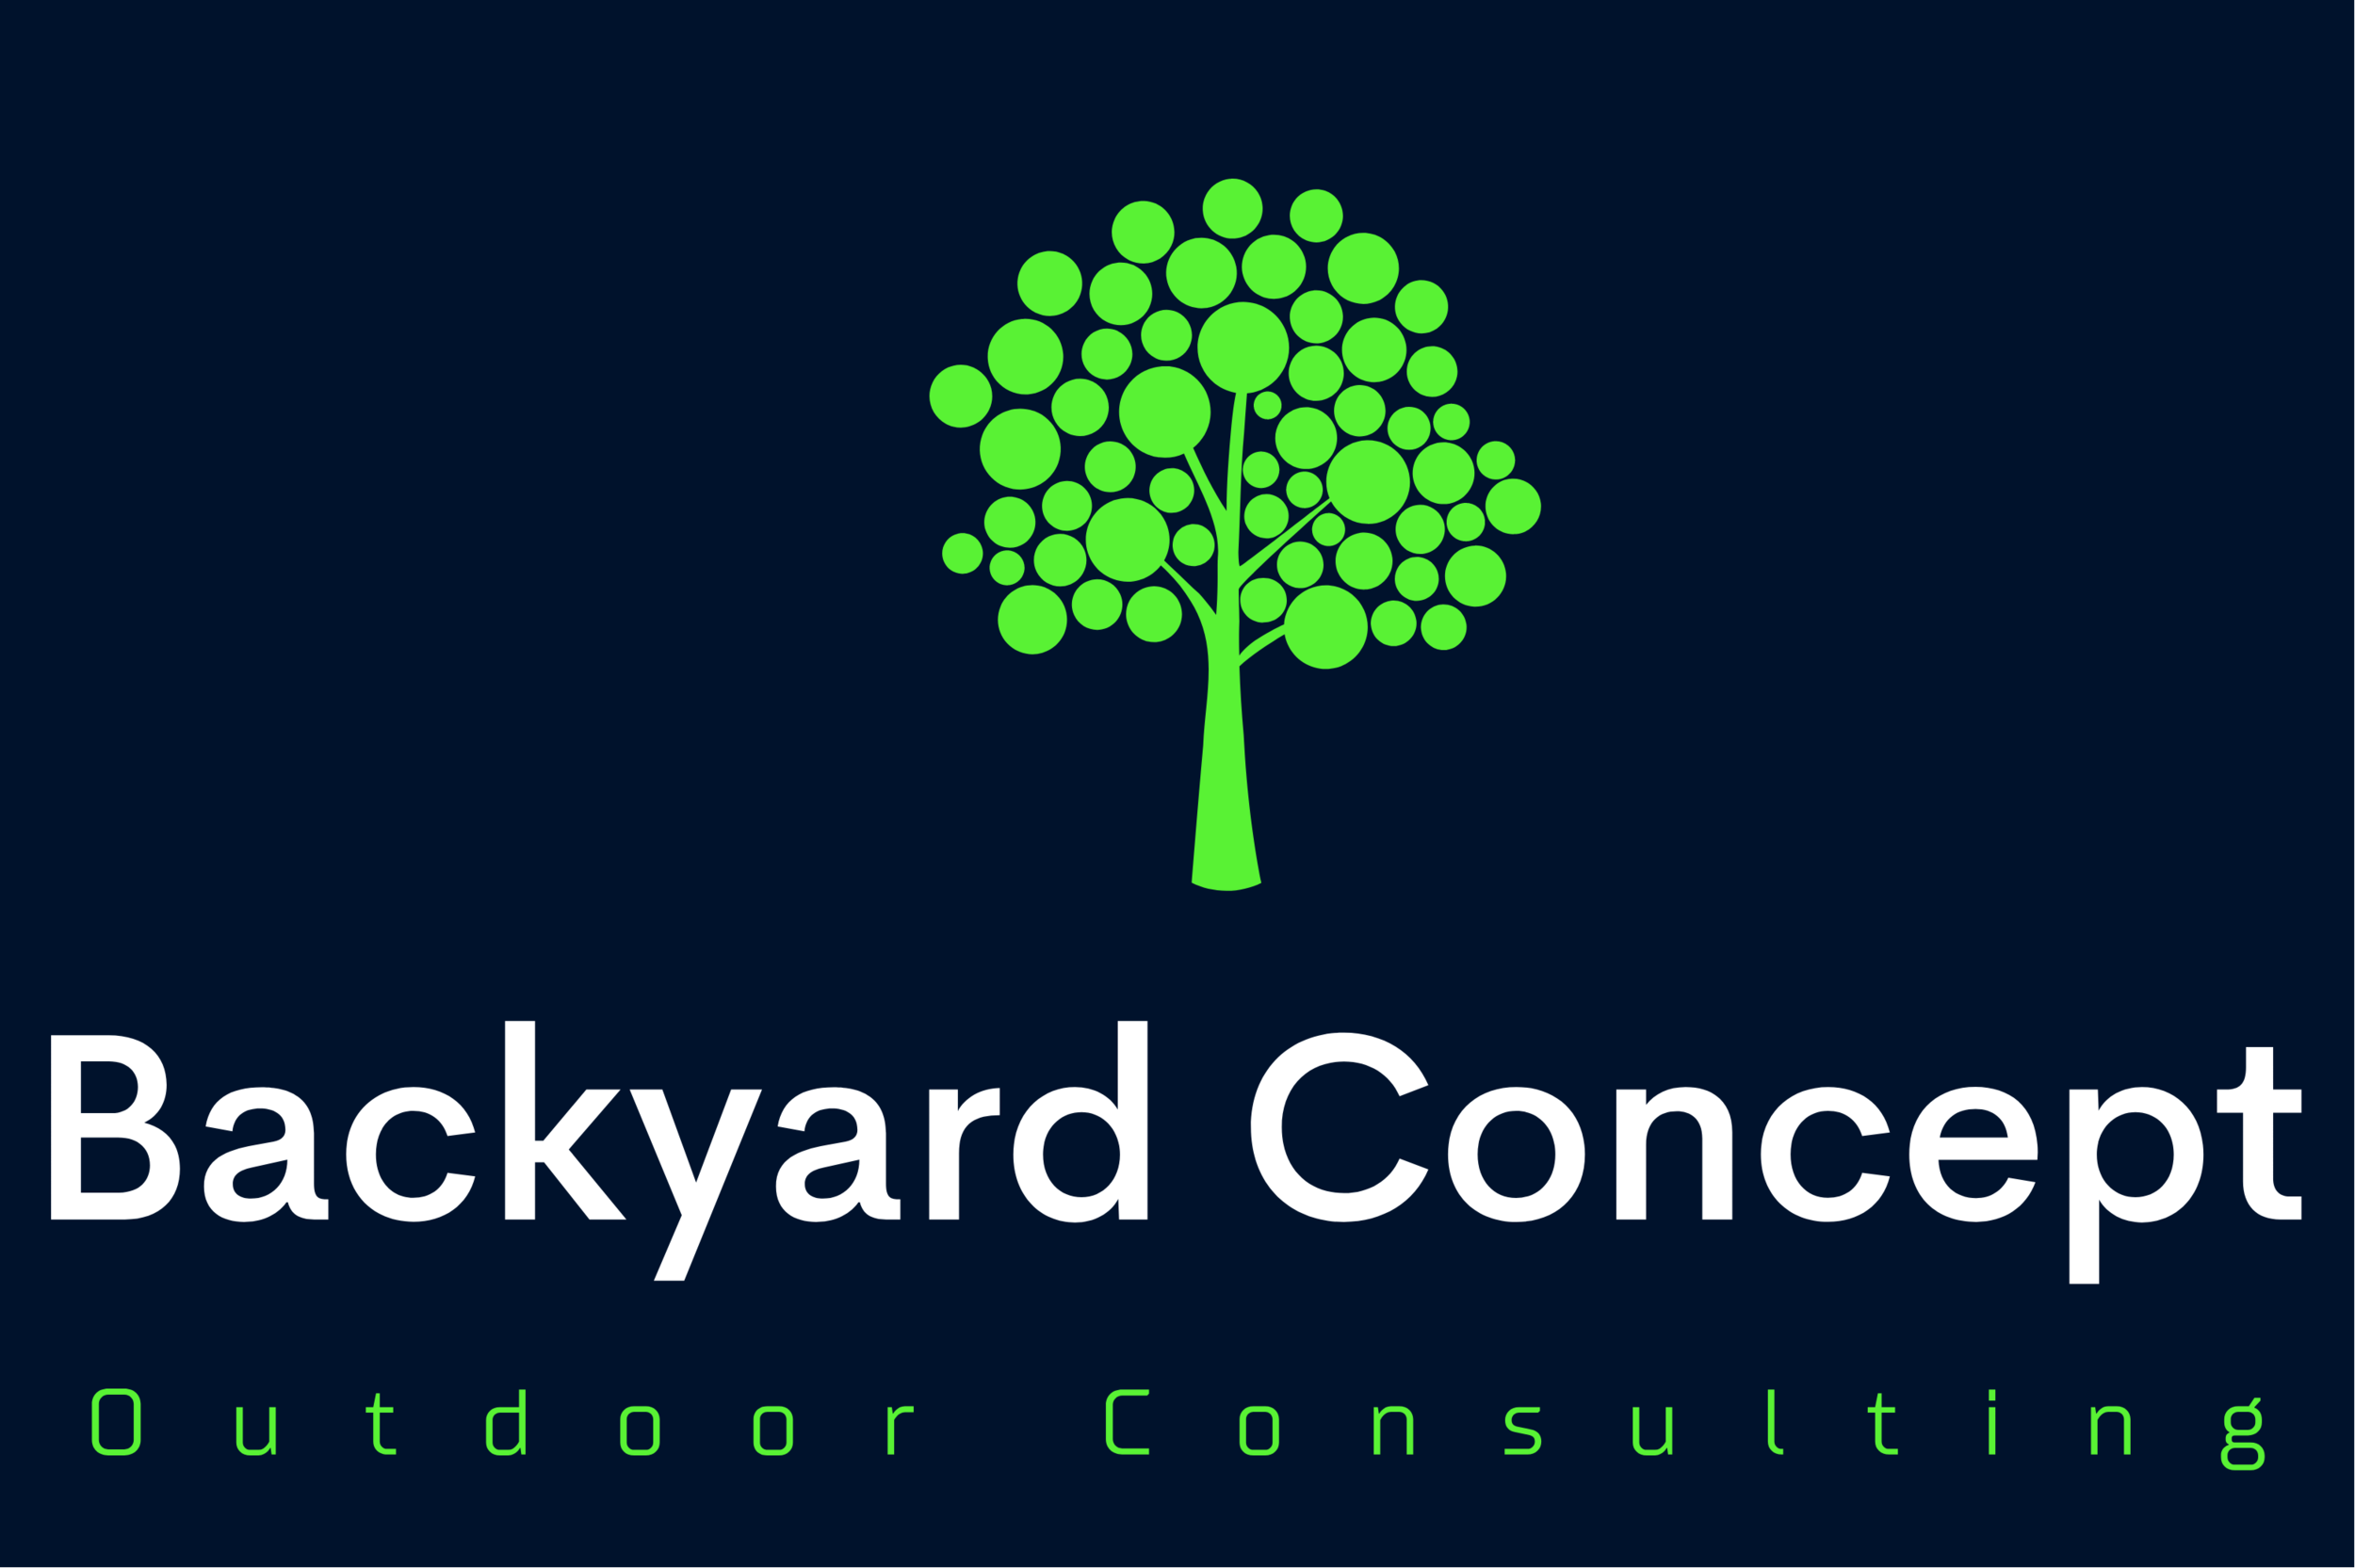 About - Backyard Concept is an advocacy-based consulting organization dedicated to advancing outdoor recreation as a means to economic development